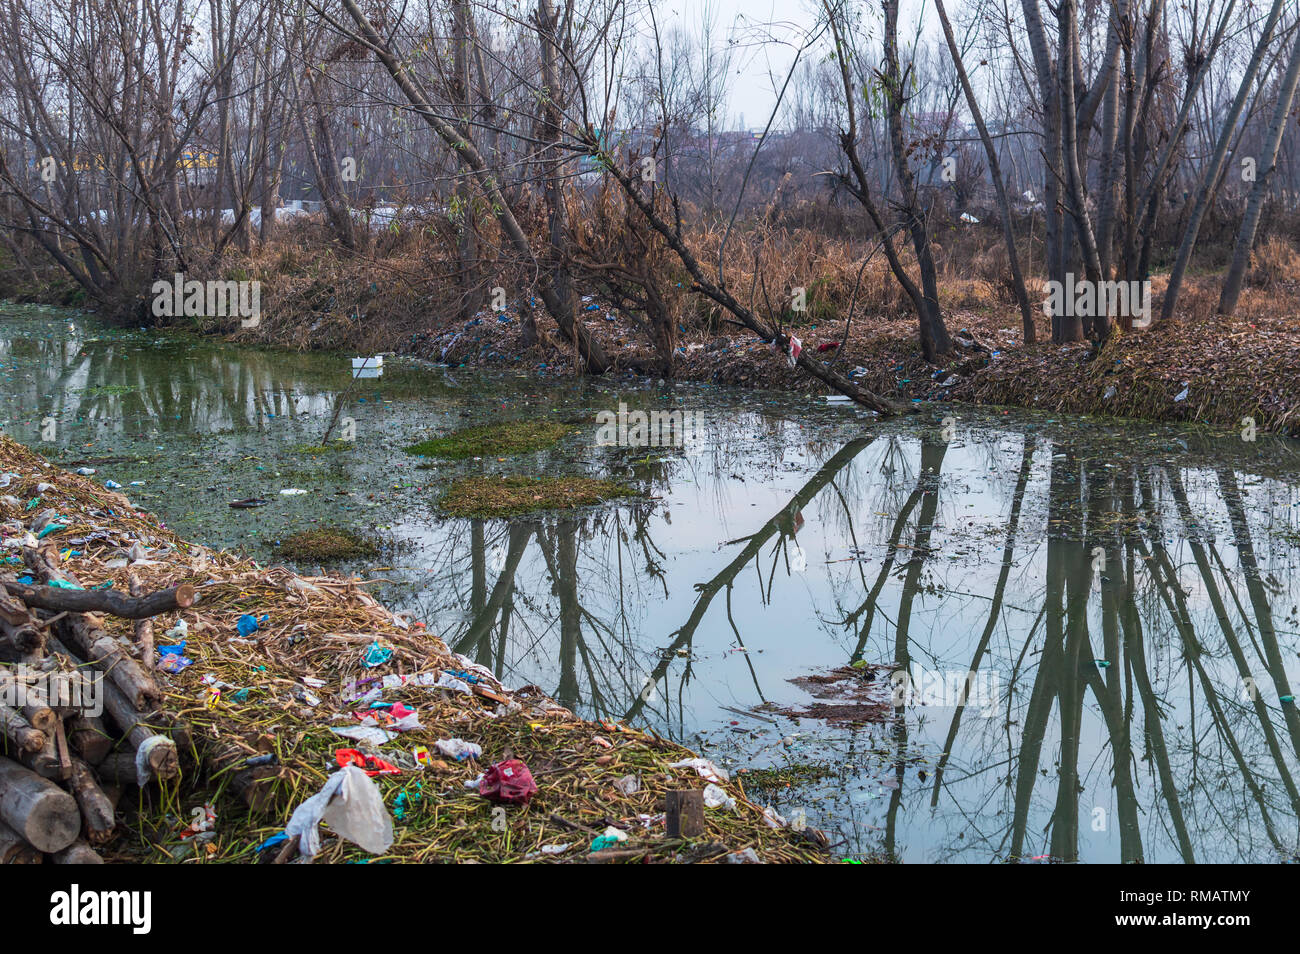 Reflection of trees in a polluted water body, Plastic wastes and human wastes depositedin a small river in Kashmir, India - Stock Image